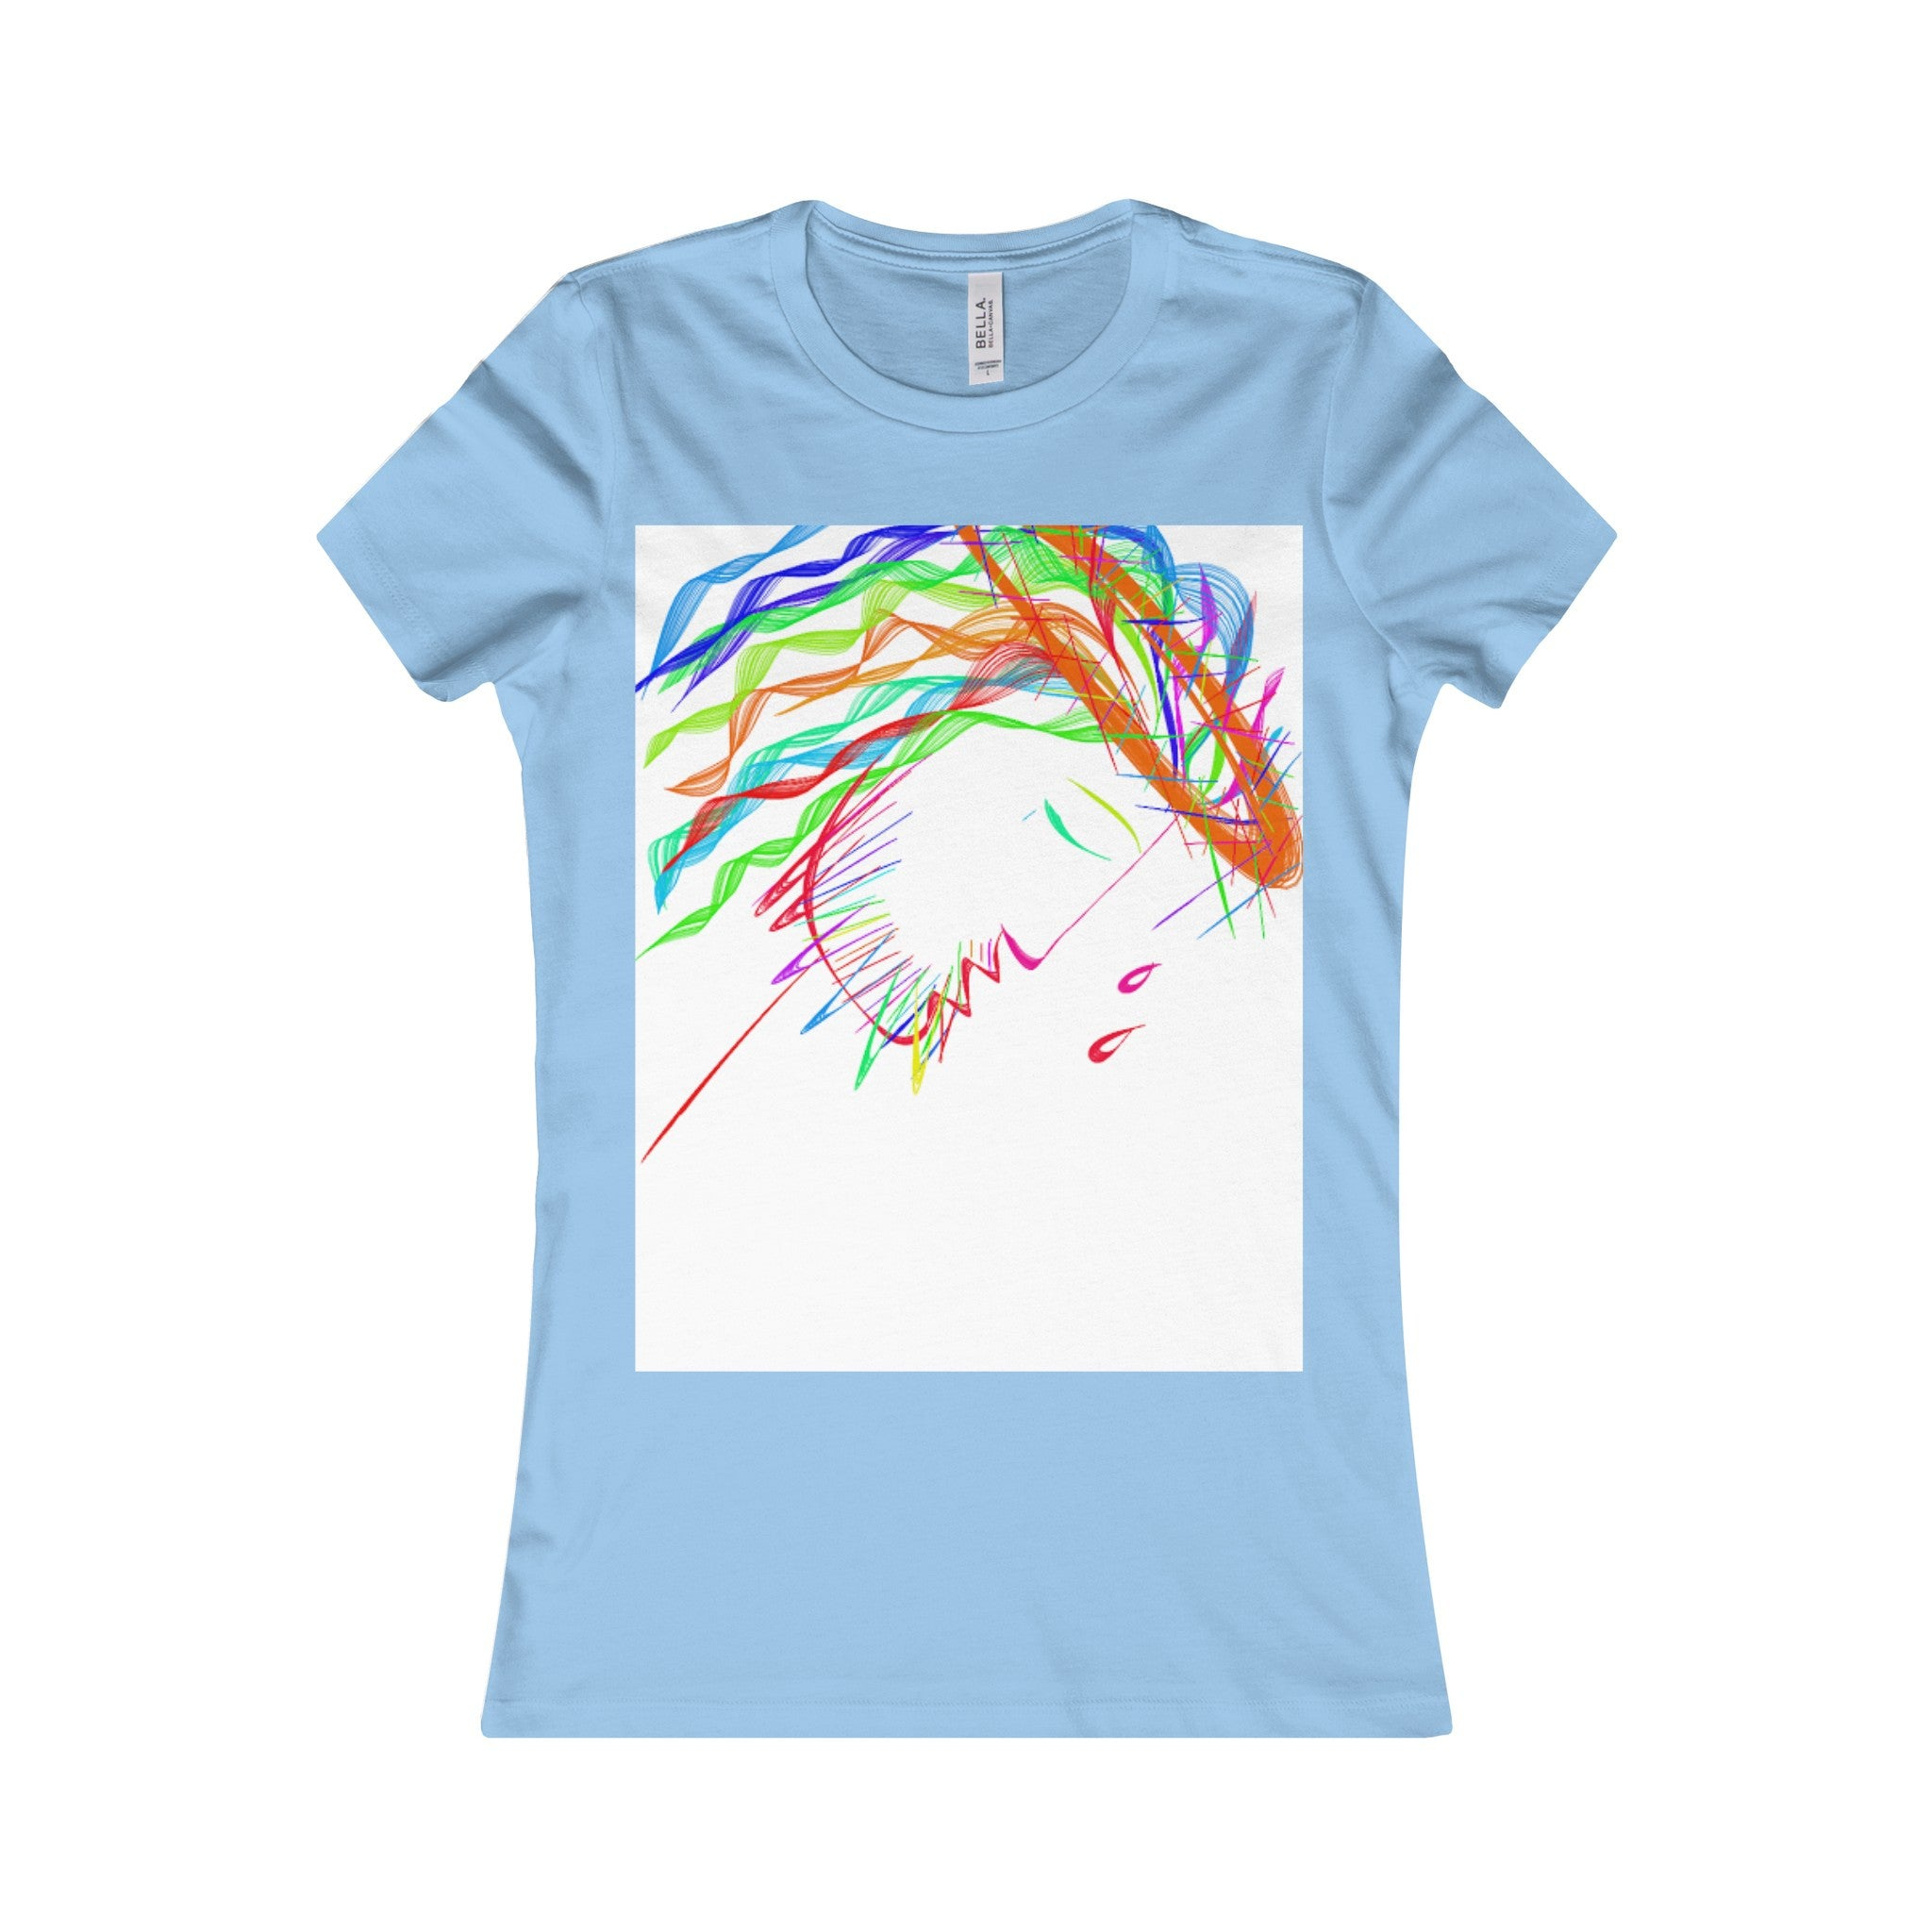 Women's Favorite Tee-T-Shirt-Printify-Baby Blue-S-Love My Husband Shop